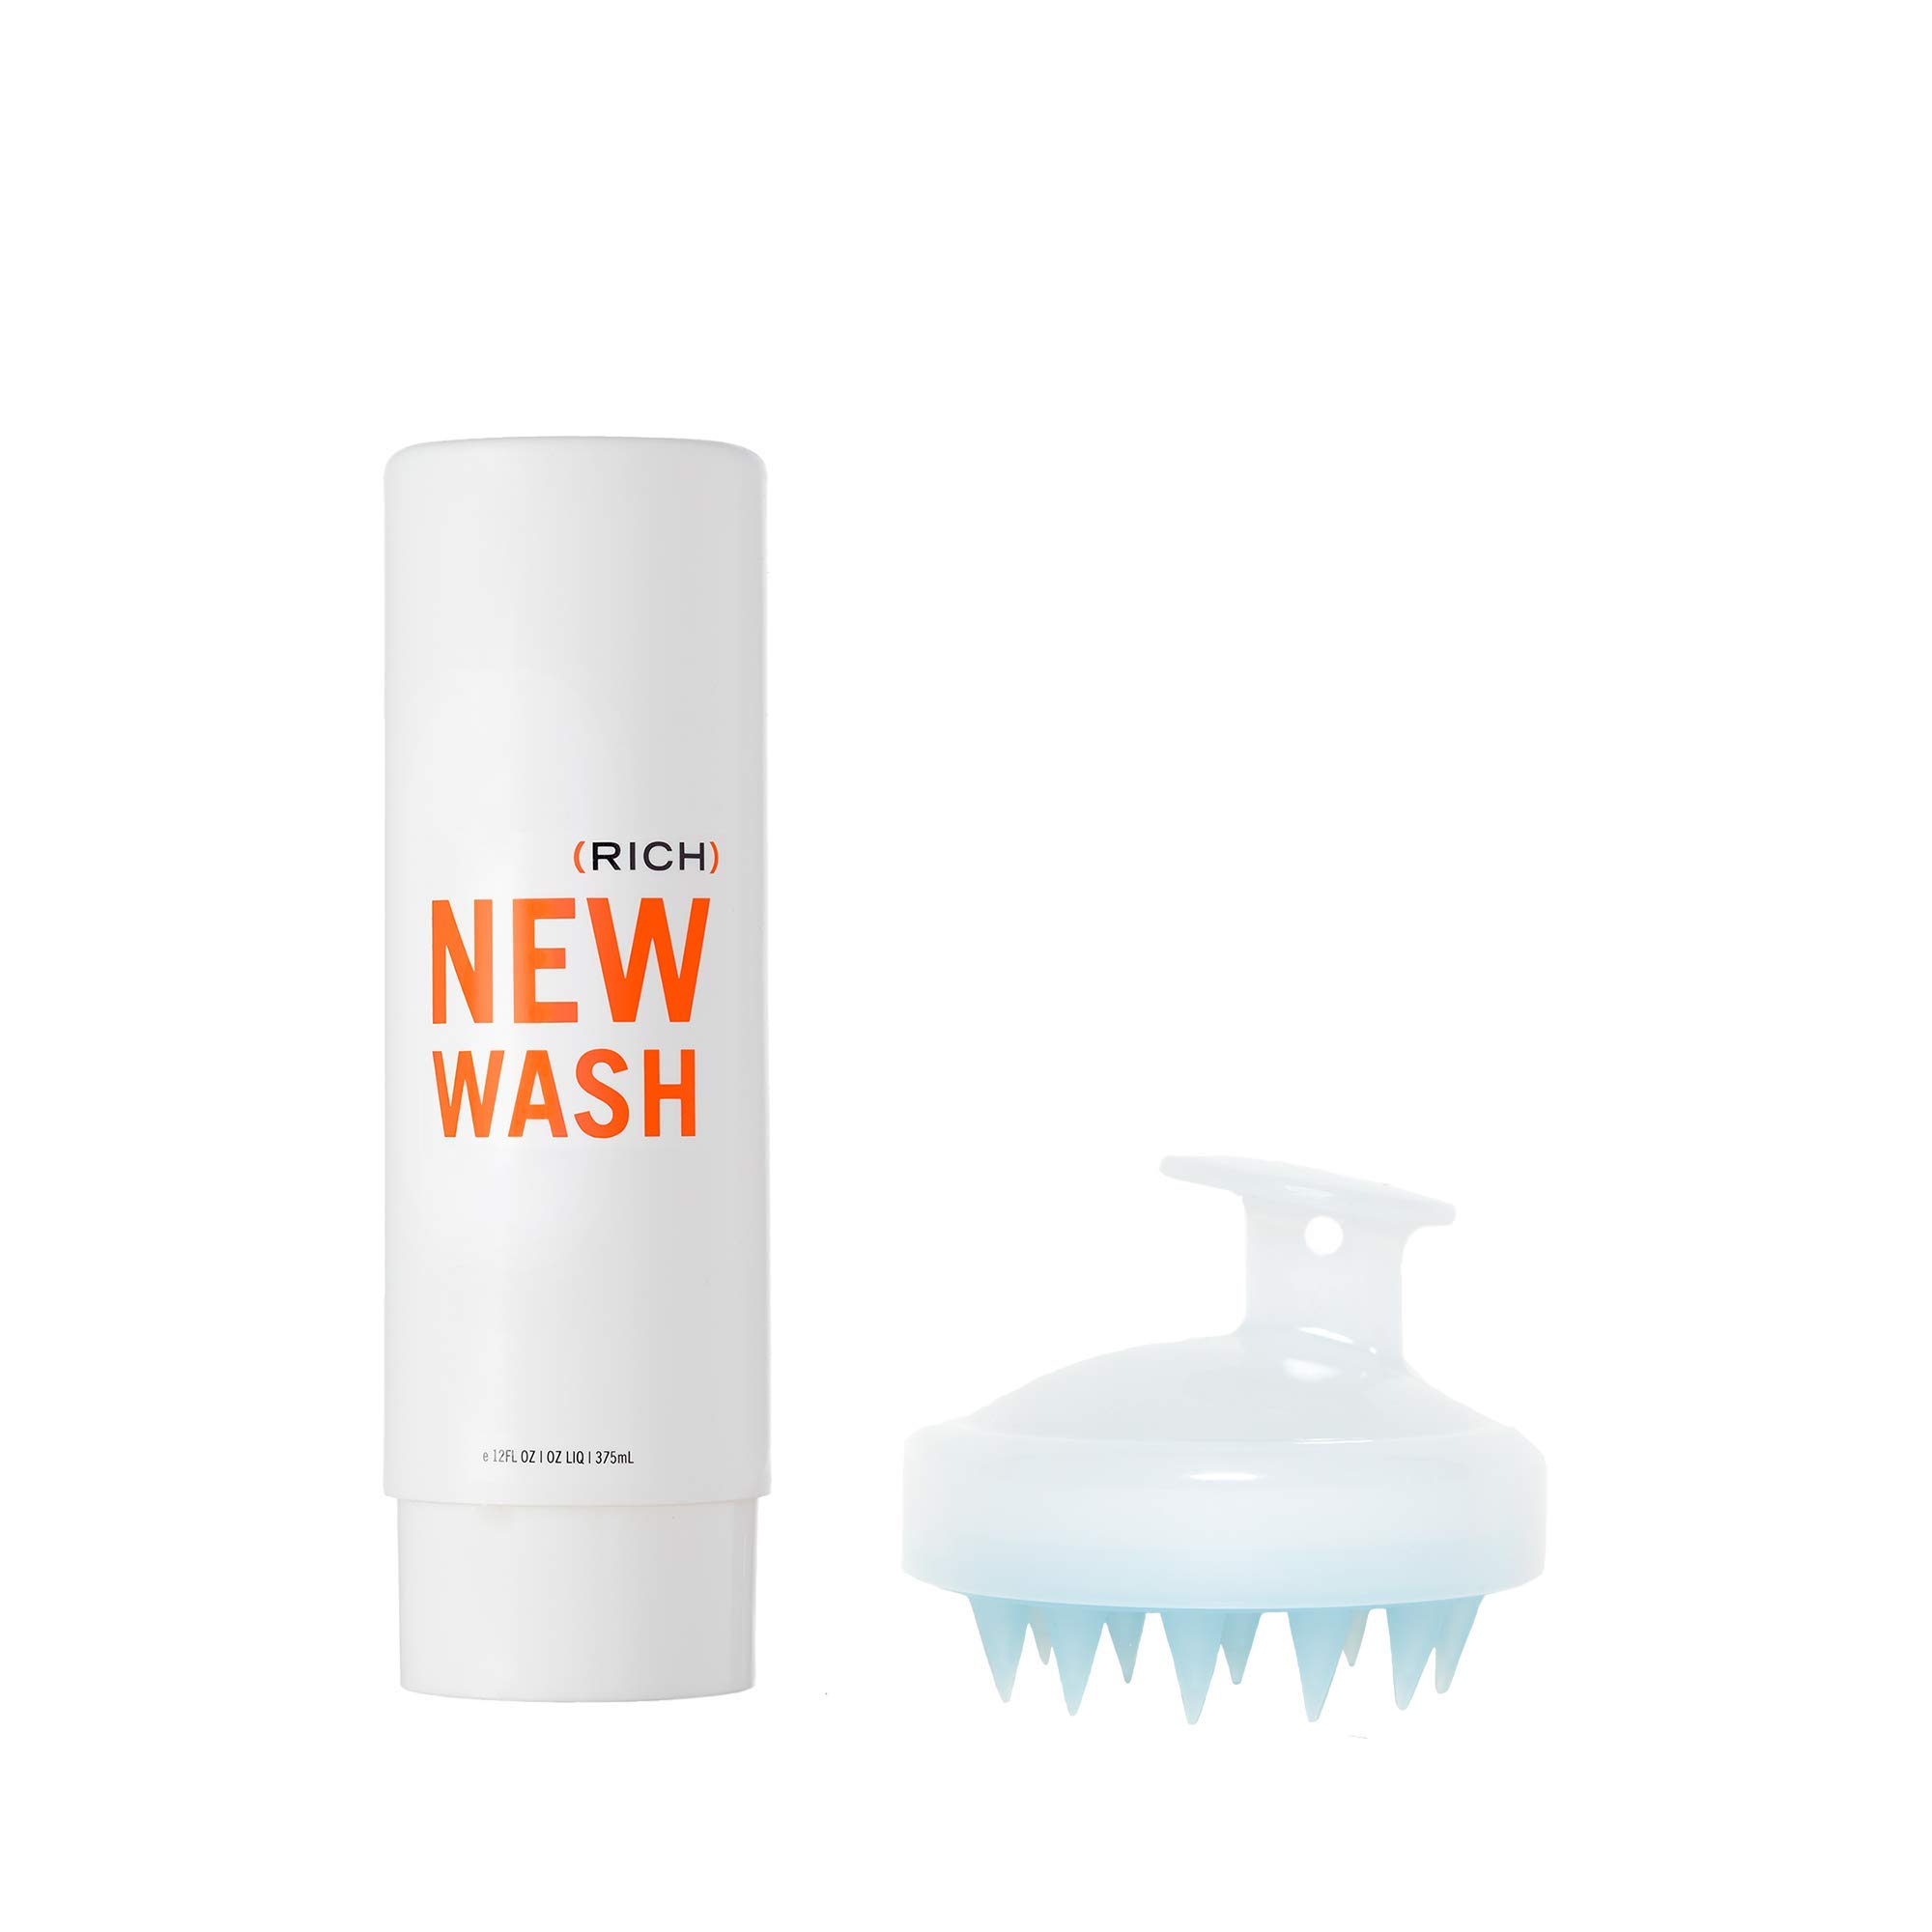 New Wash (RICH) Hair Cleanser 8oz + Scalp Brush - Extra Moisturizing cleanser & conditioner by Hairstory